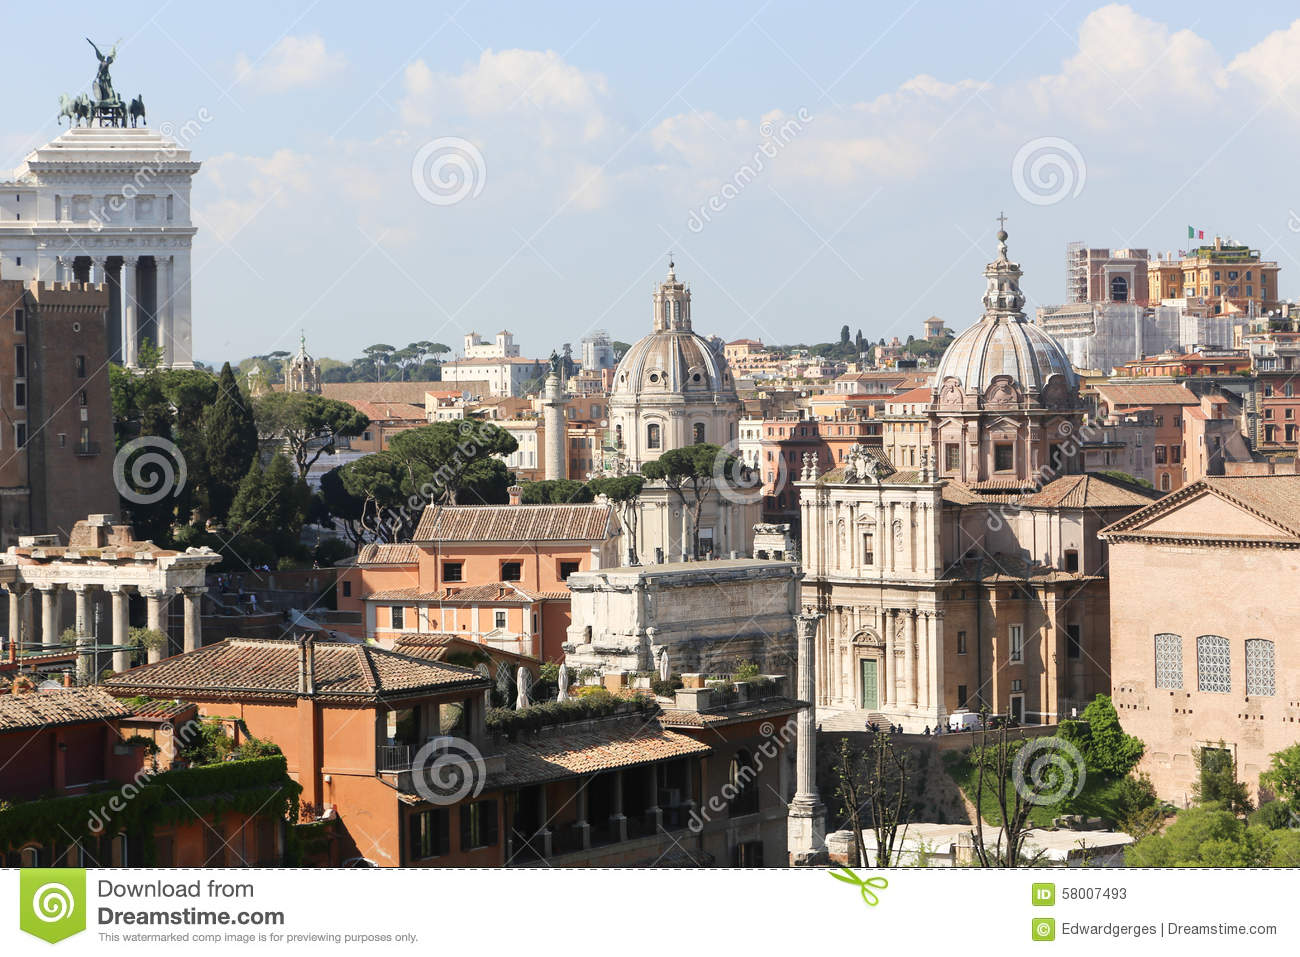 rome images downtown - photo#44